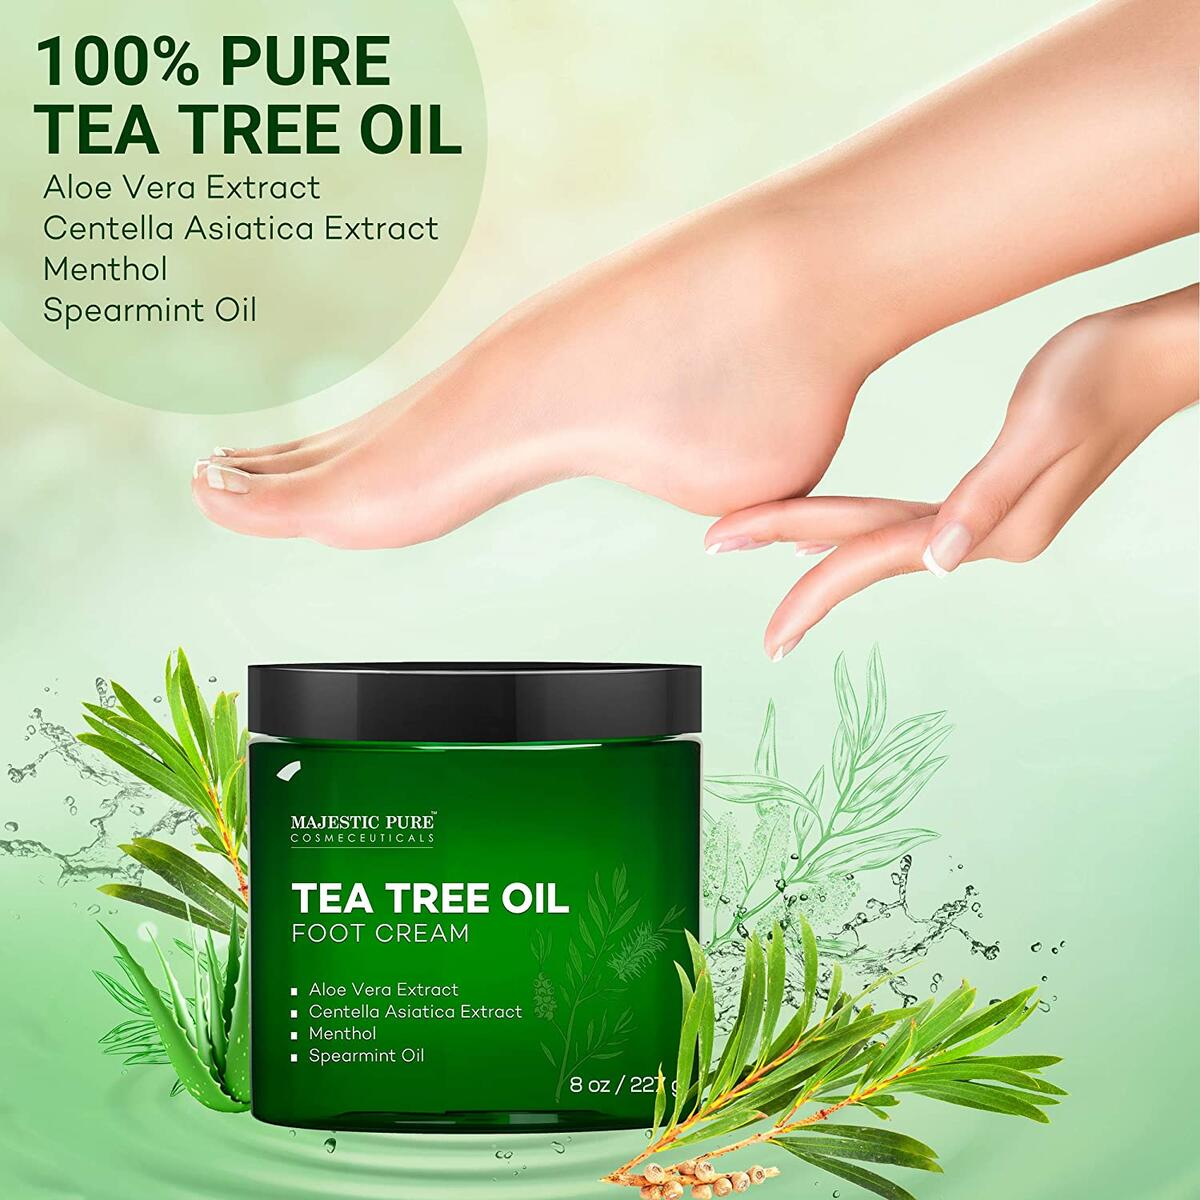 Athletes Foot Cream with Tea Tree Oil, Aloe & Spearmint - Hydrates, Softens & Conditions Dry Cracked Feet, Heel and Calluses,- Helps Soothe Irritated Skin - 8 oz